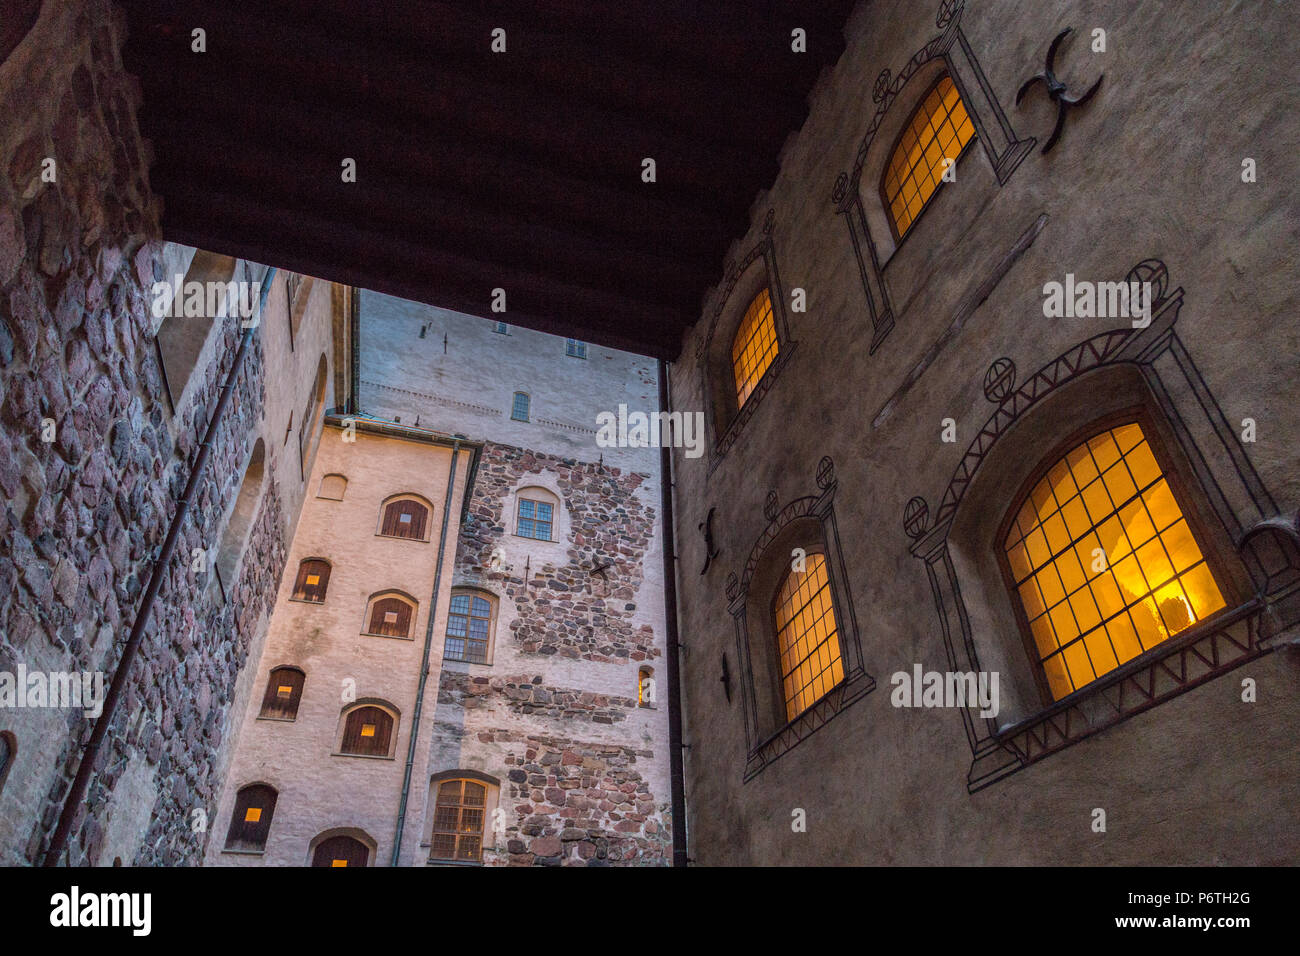 Walls and windows of courtyard of Turku Caste evening dusk - Stock Image